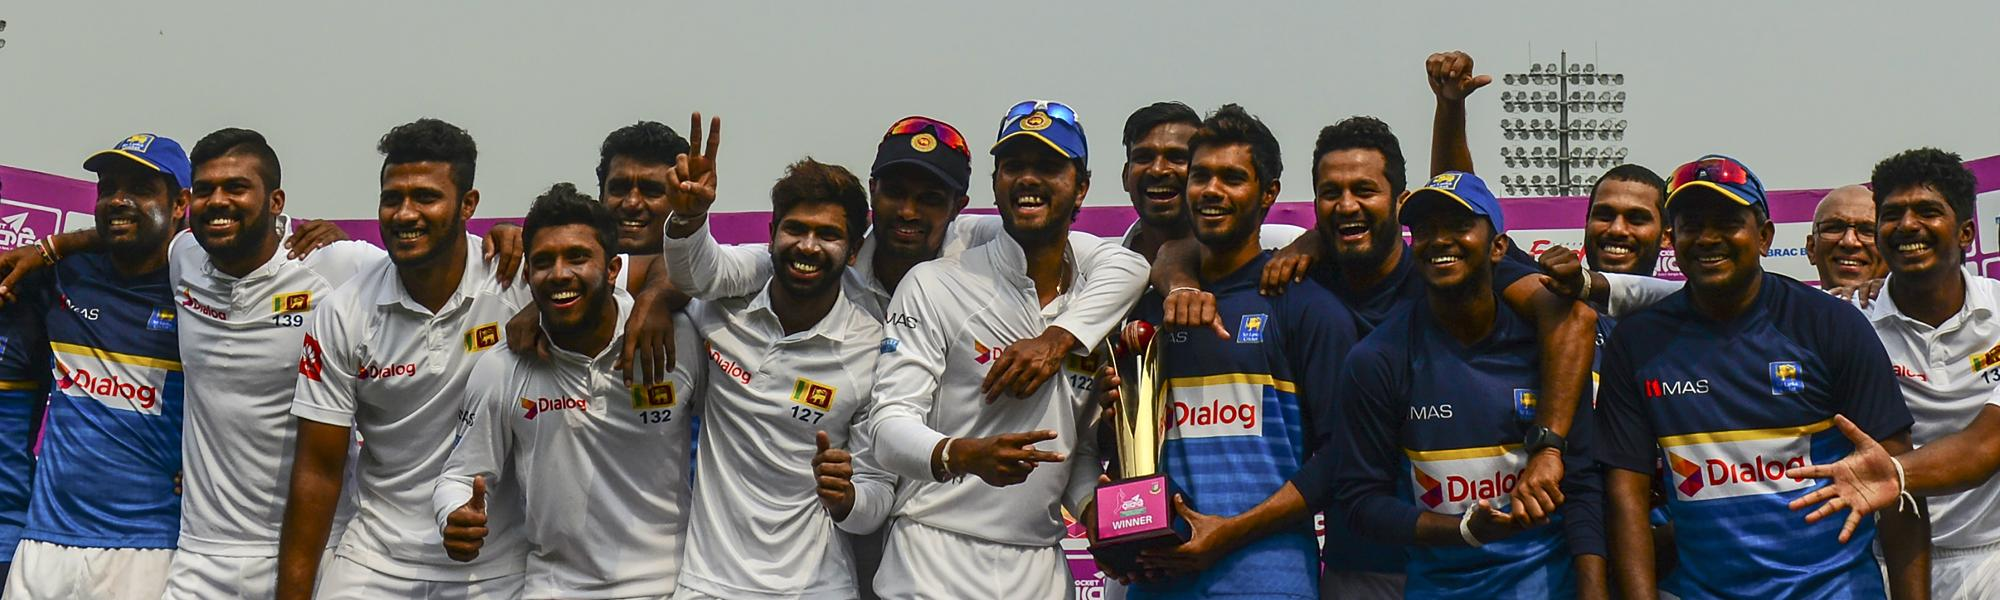 The Sri Lankans pose with their spoils after winning the two-Test series in Bangladesh.